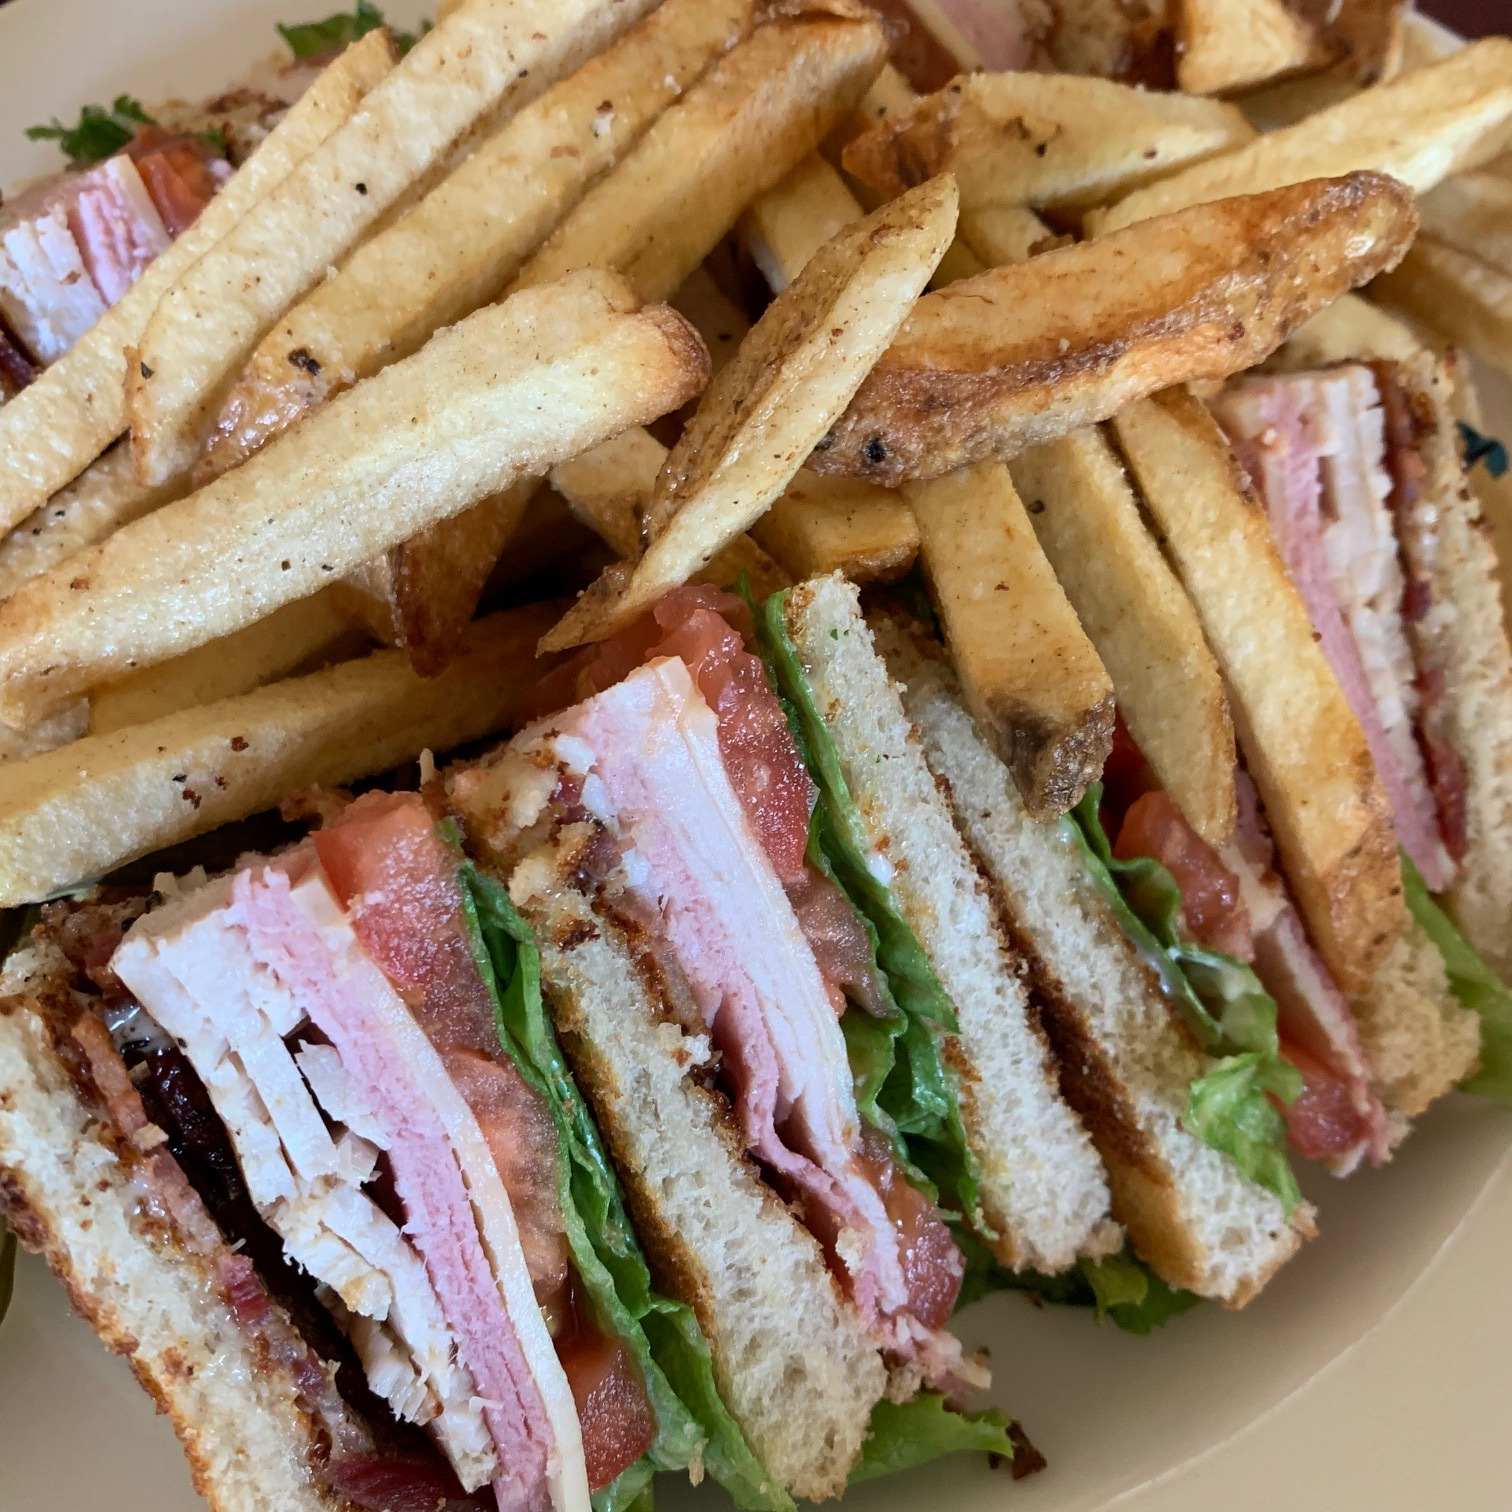 The Club Sandwich with plenty of crispy salty french fries. It's big enough to share.